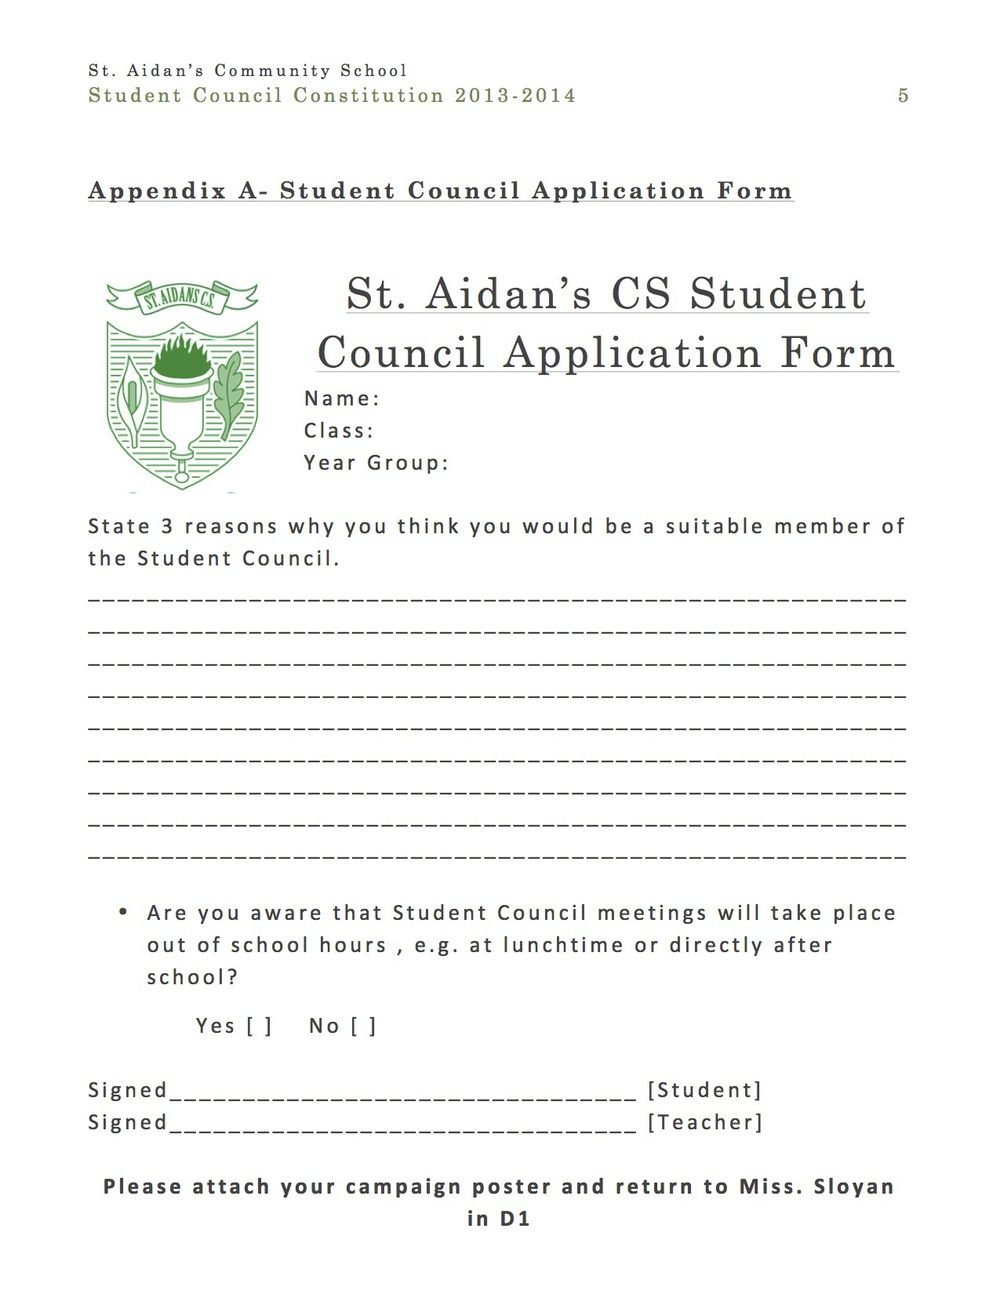 Student Council Constitution Doc5.jpg